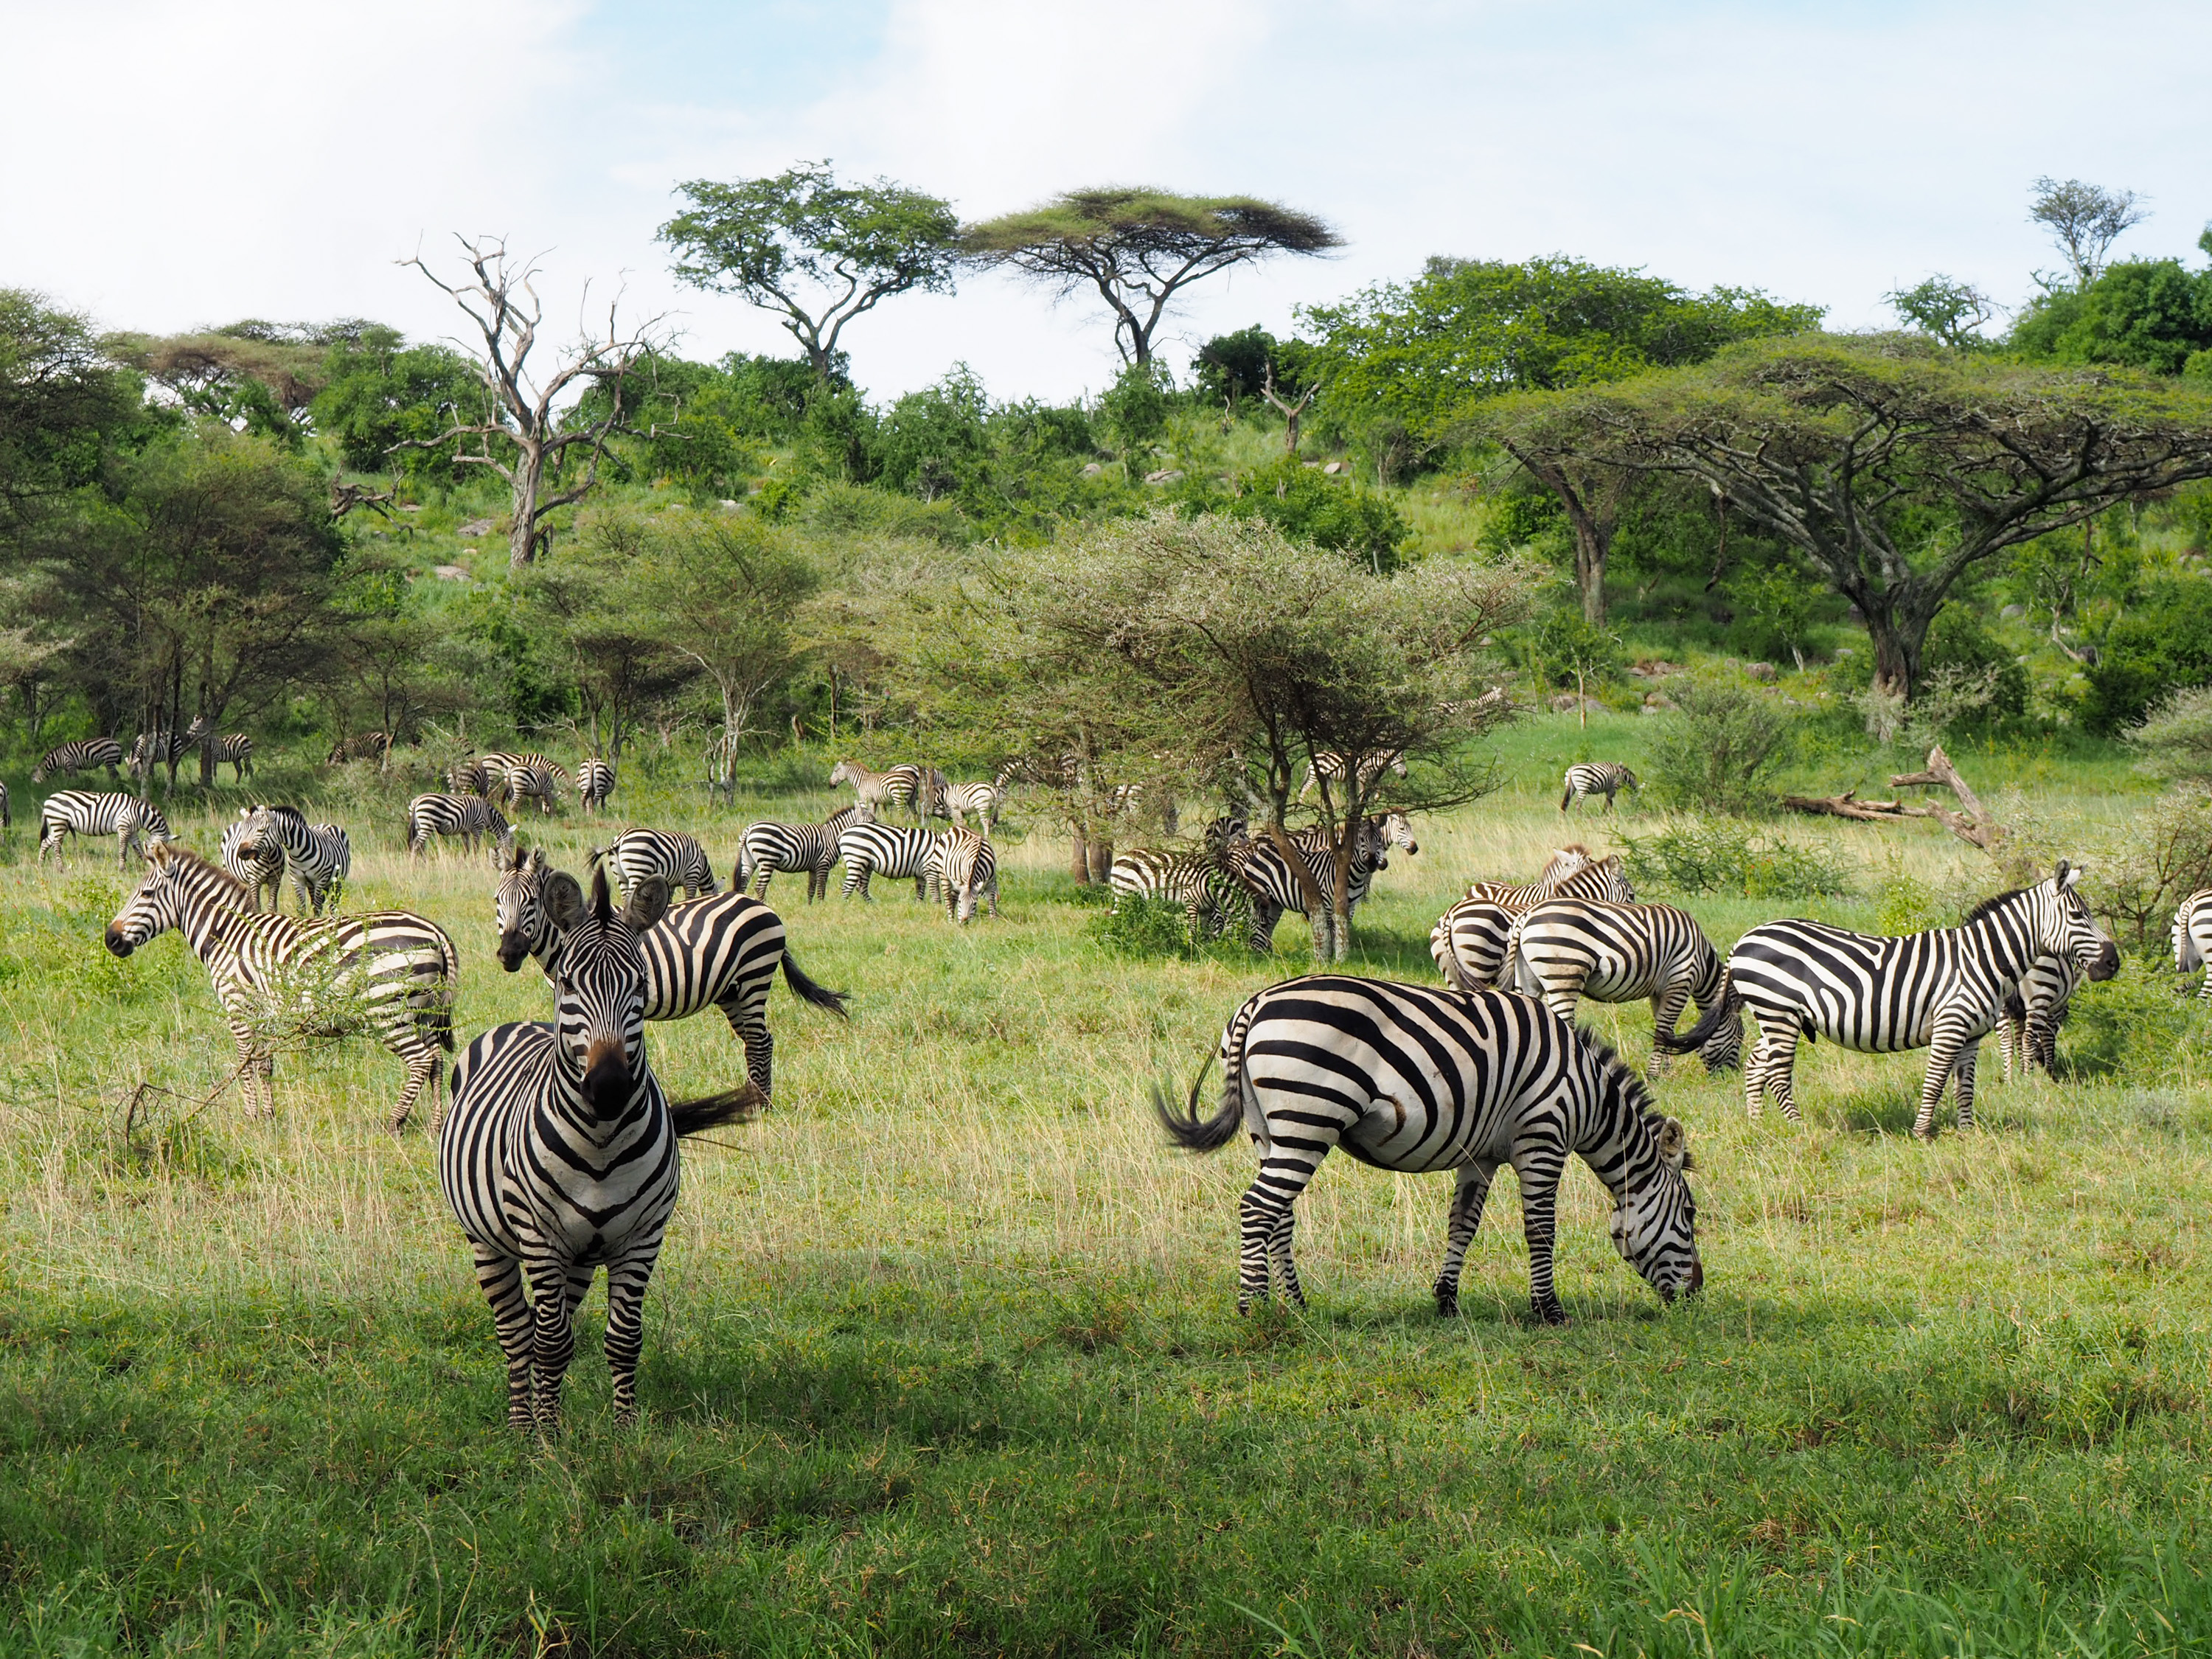 We came over one hill and saw hundreds of zebras. <i>Anne Strainchamps (TTBOOK)</i>